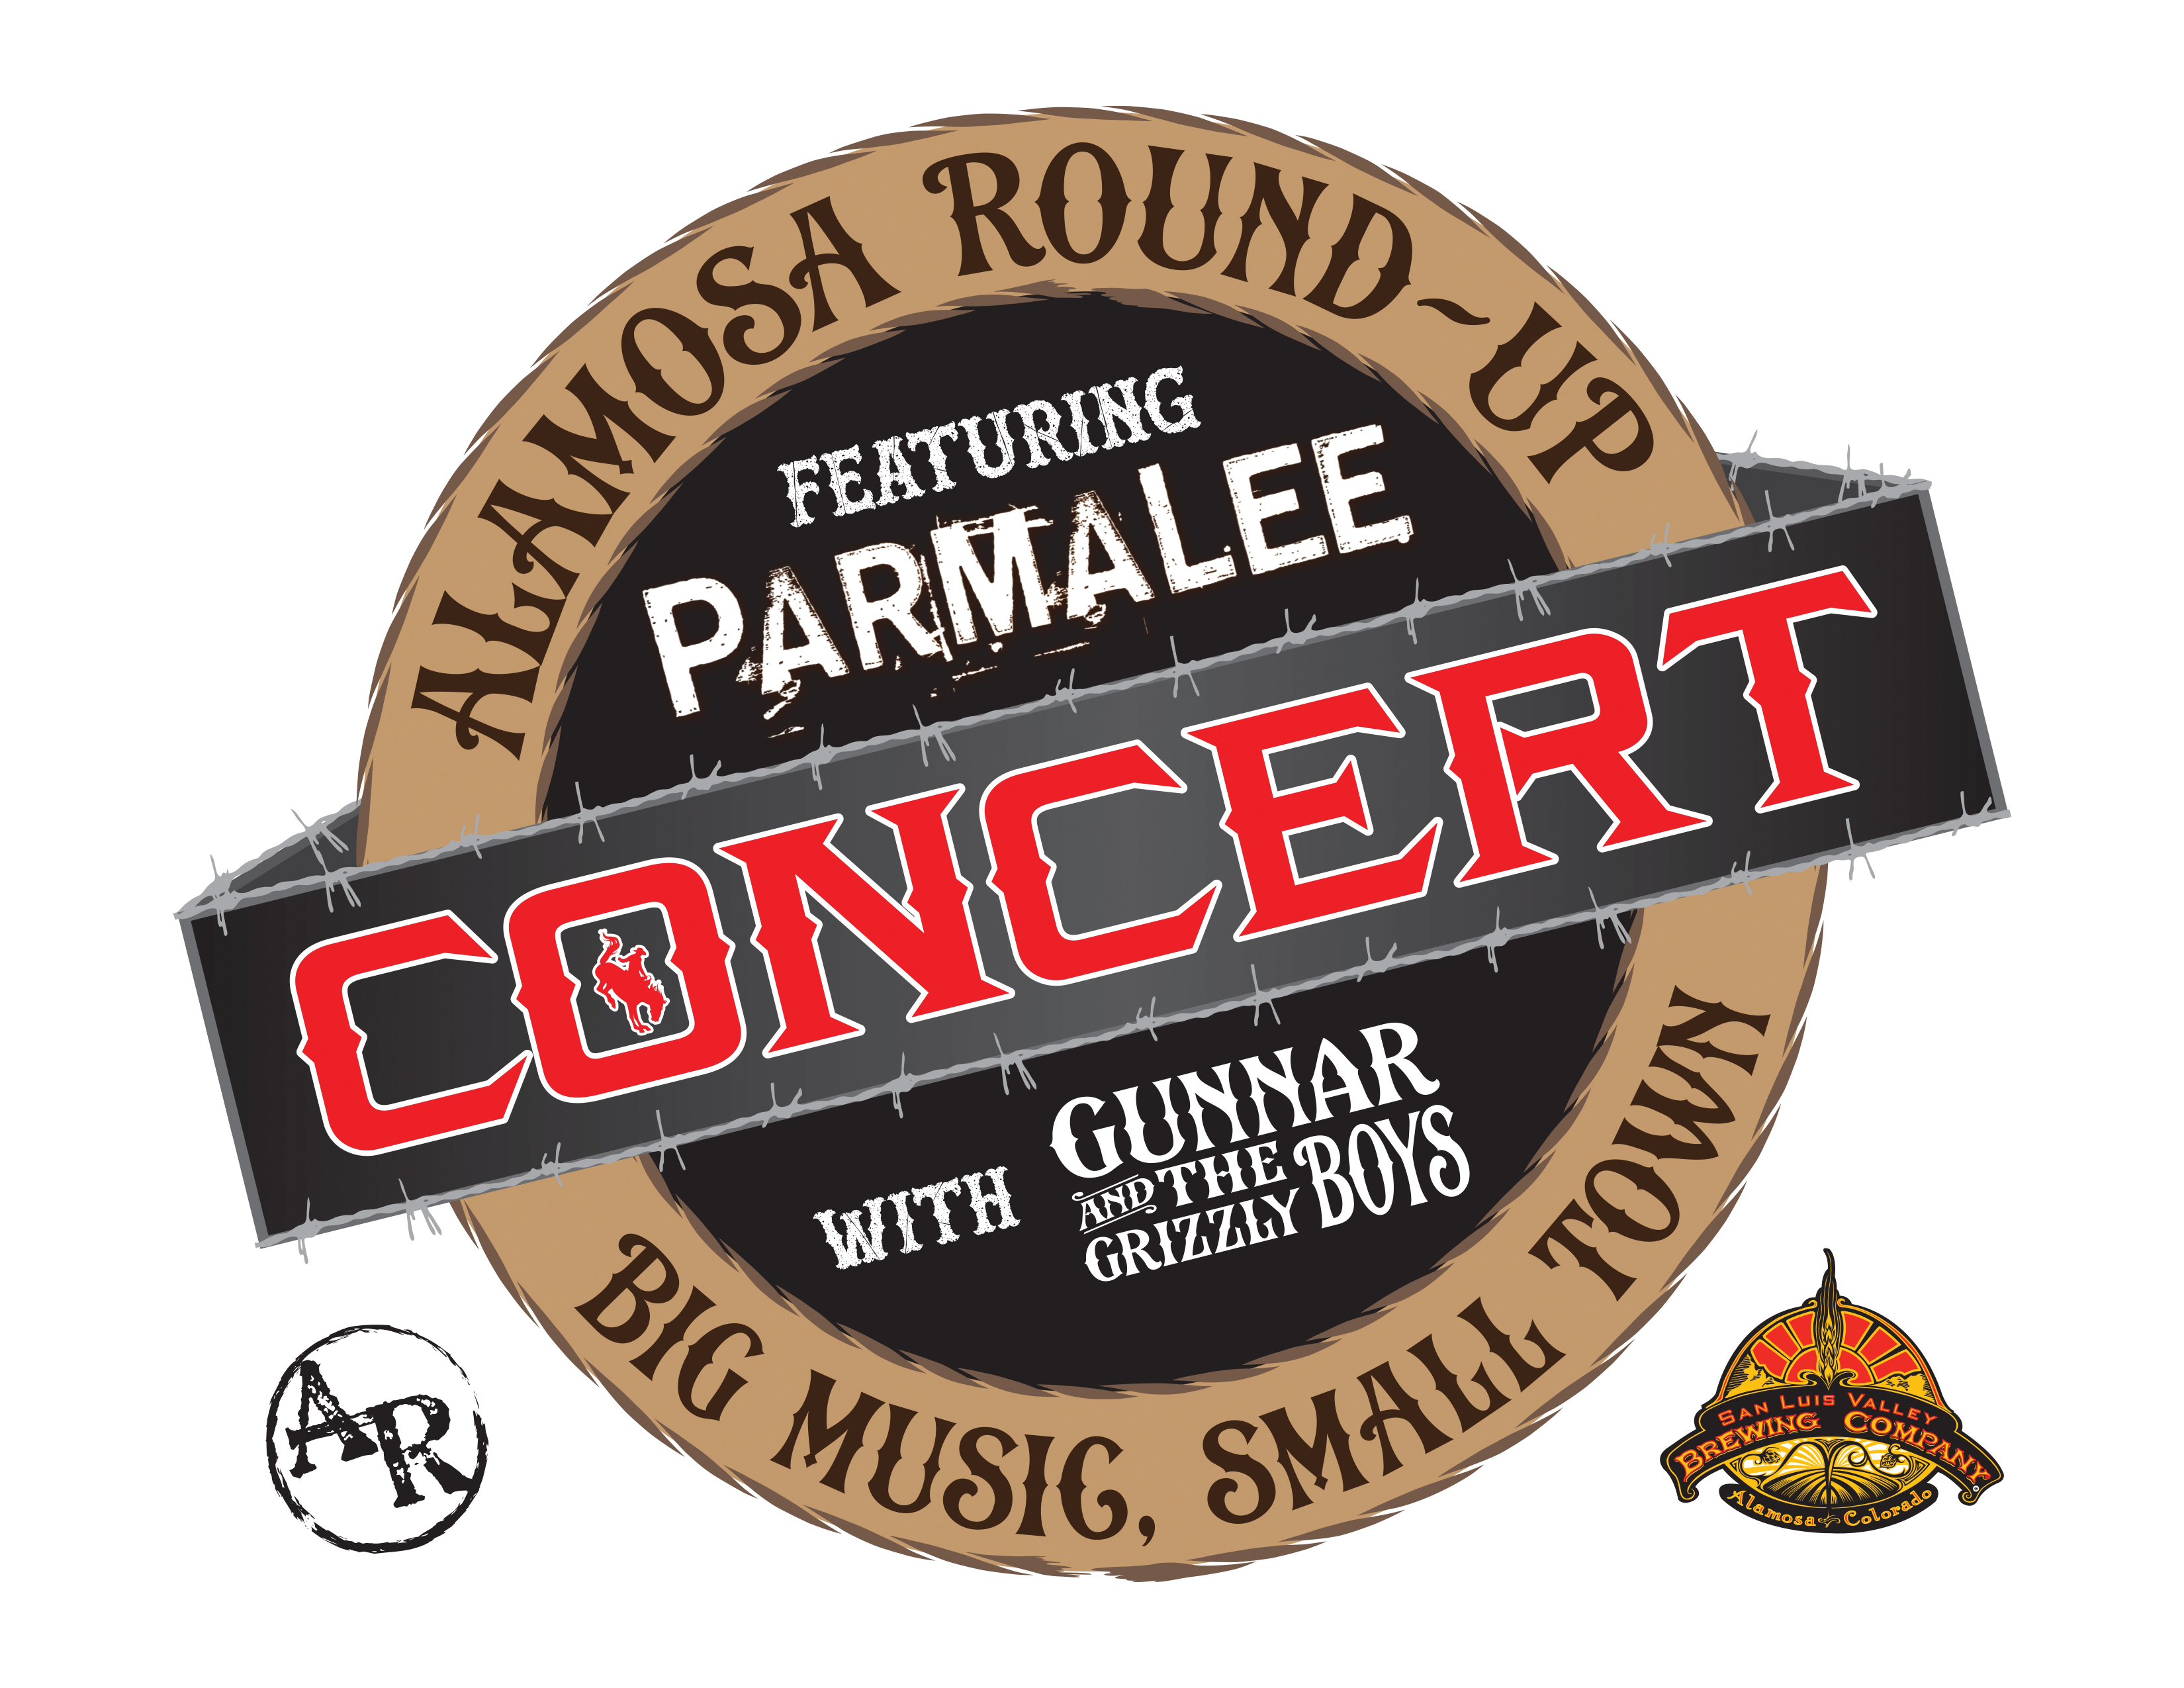 Alamosa Round Up 2019 Official Website